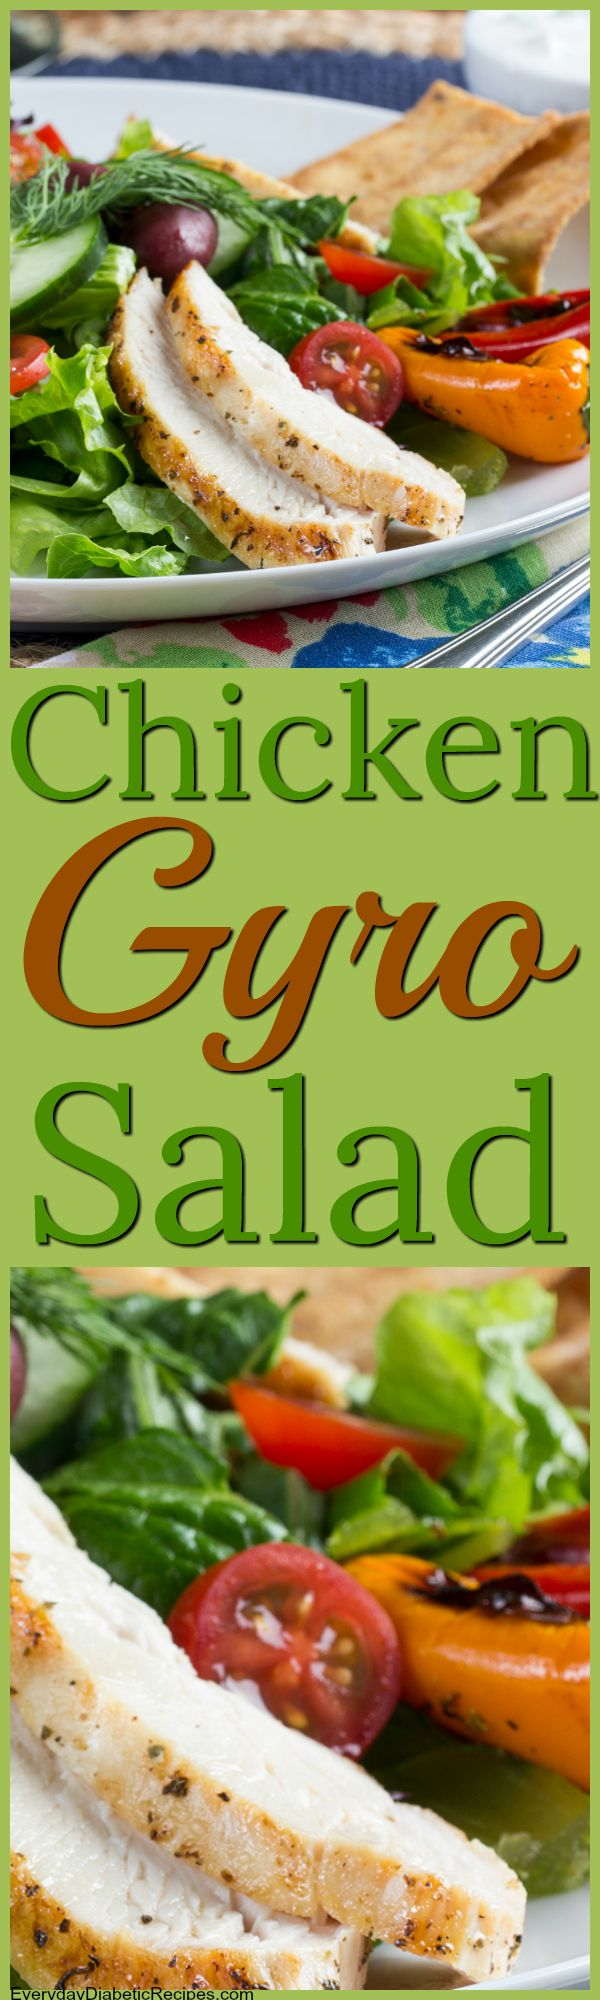 A perfect salad for spring! #springsalad #chicken #diabeticfriendly #recipes #chickensalad #chickengyro